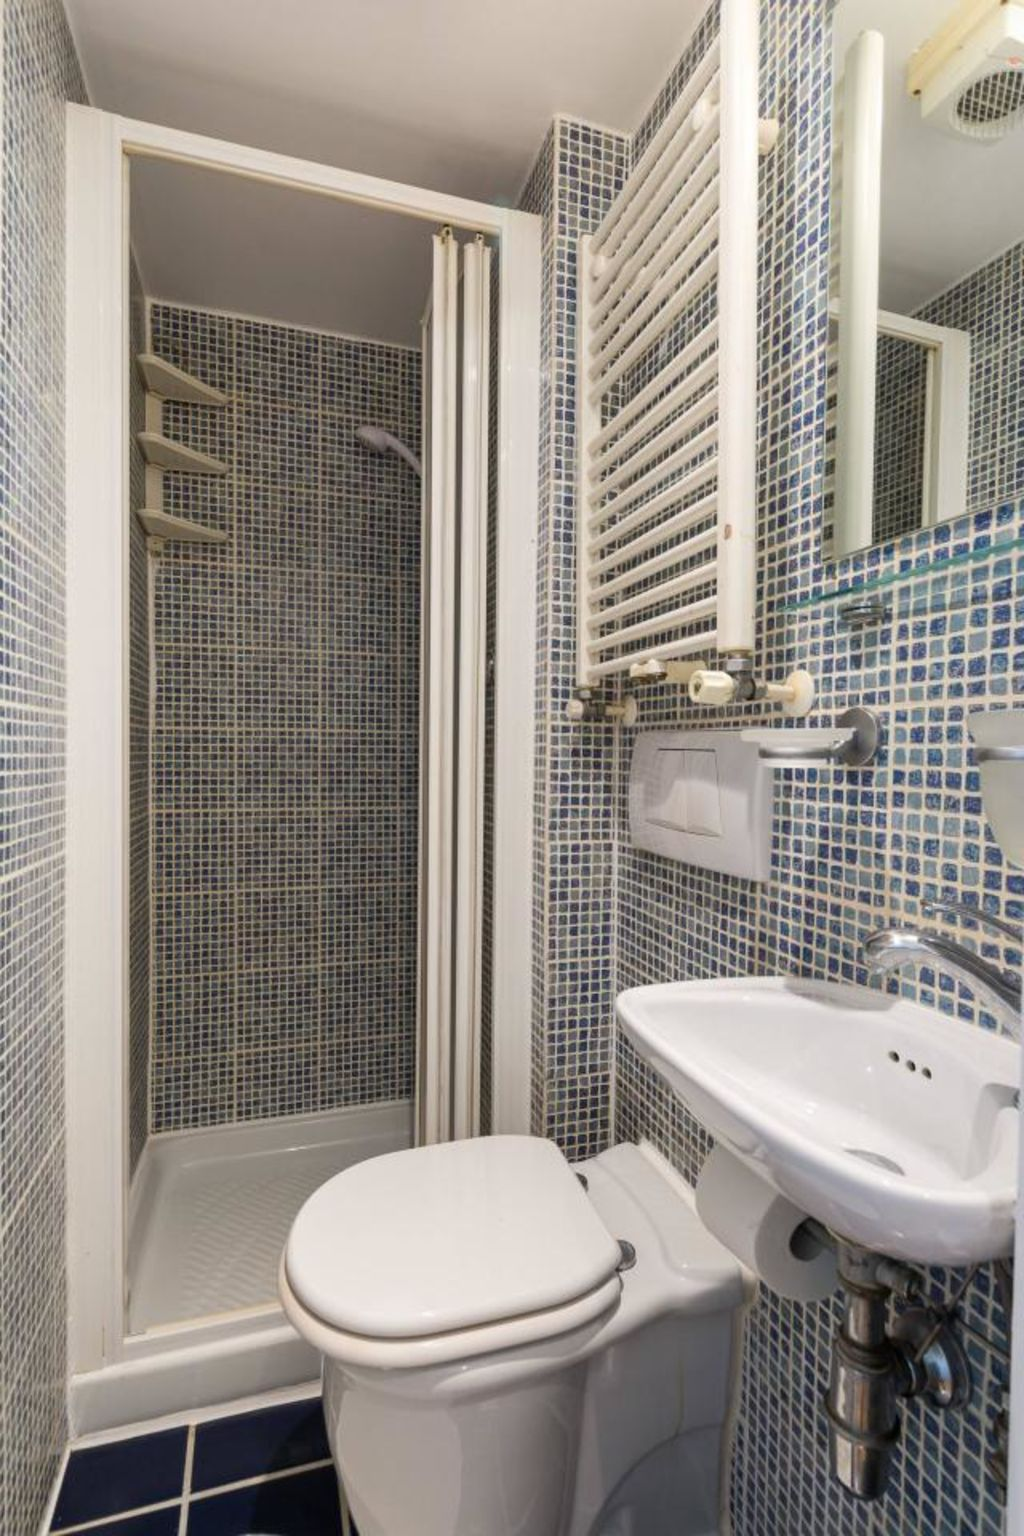 image 4 furnished 1 bedroom Apartment for rent in Warwick, Warwickshire